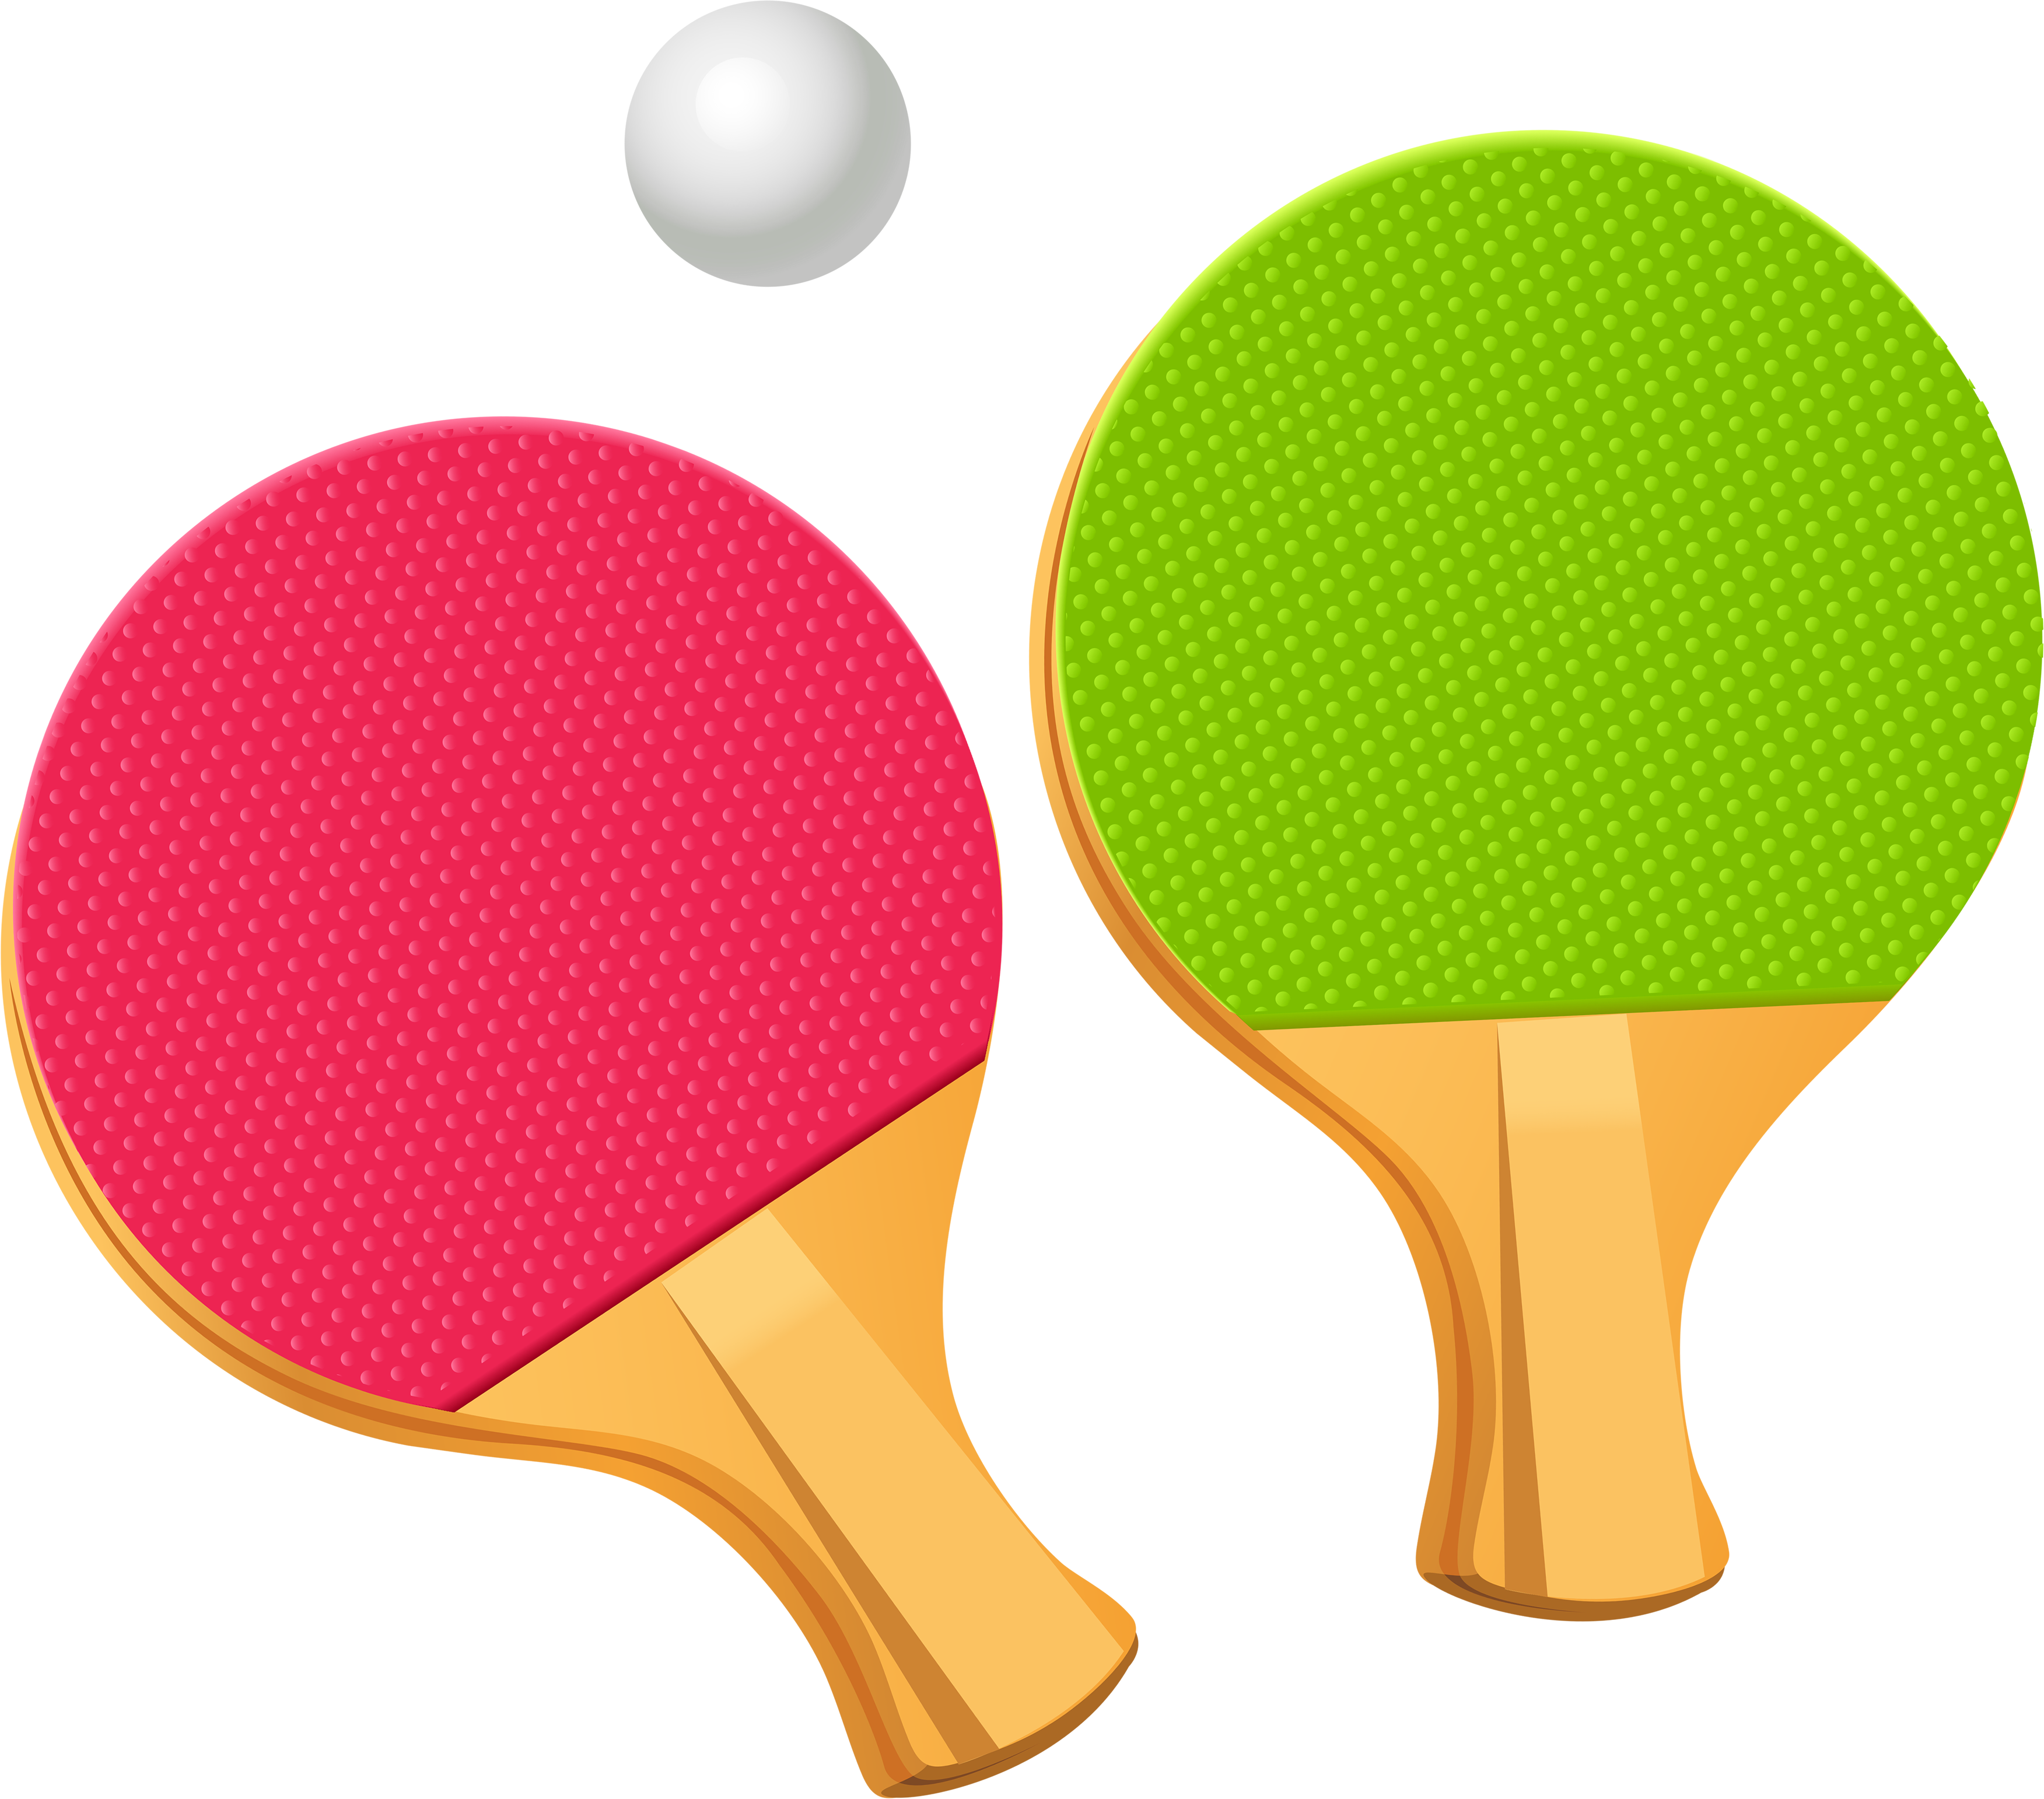 Ping Pong PNG Image - PurePNG | Free transparent CC0 PNG Image Library